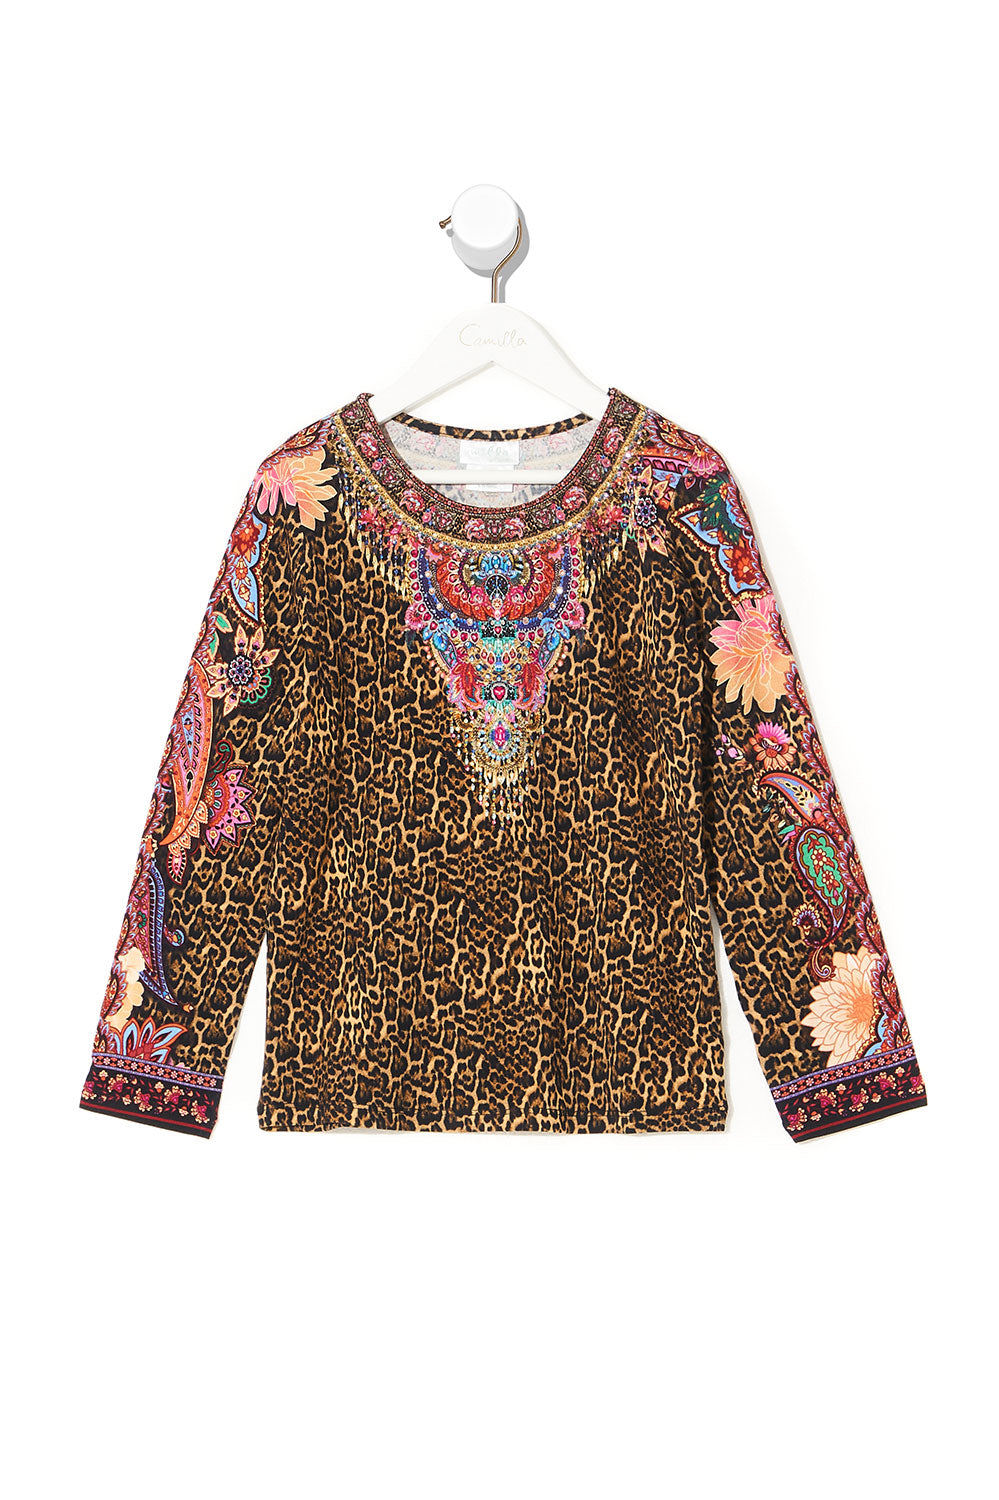 KIDS FITTED LONG SLEEVE TOP 12-14 MAYFAIR MARY